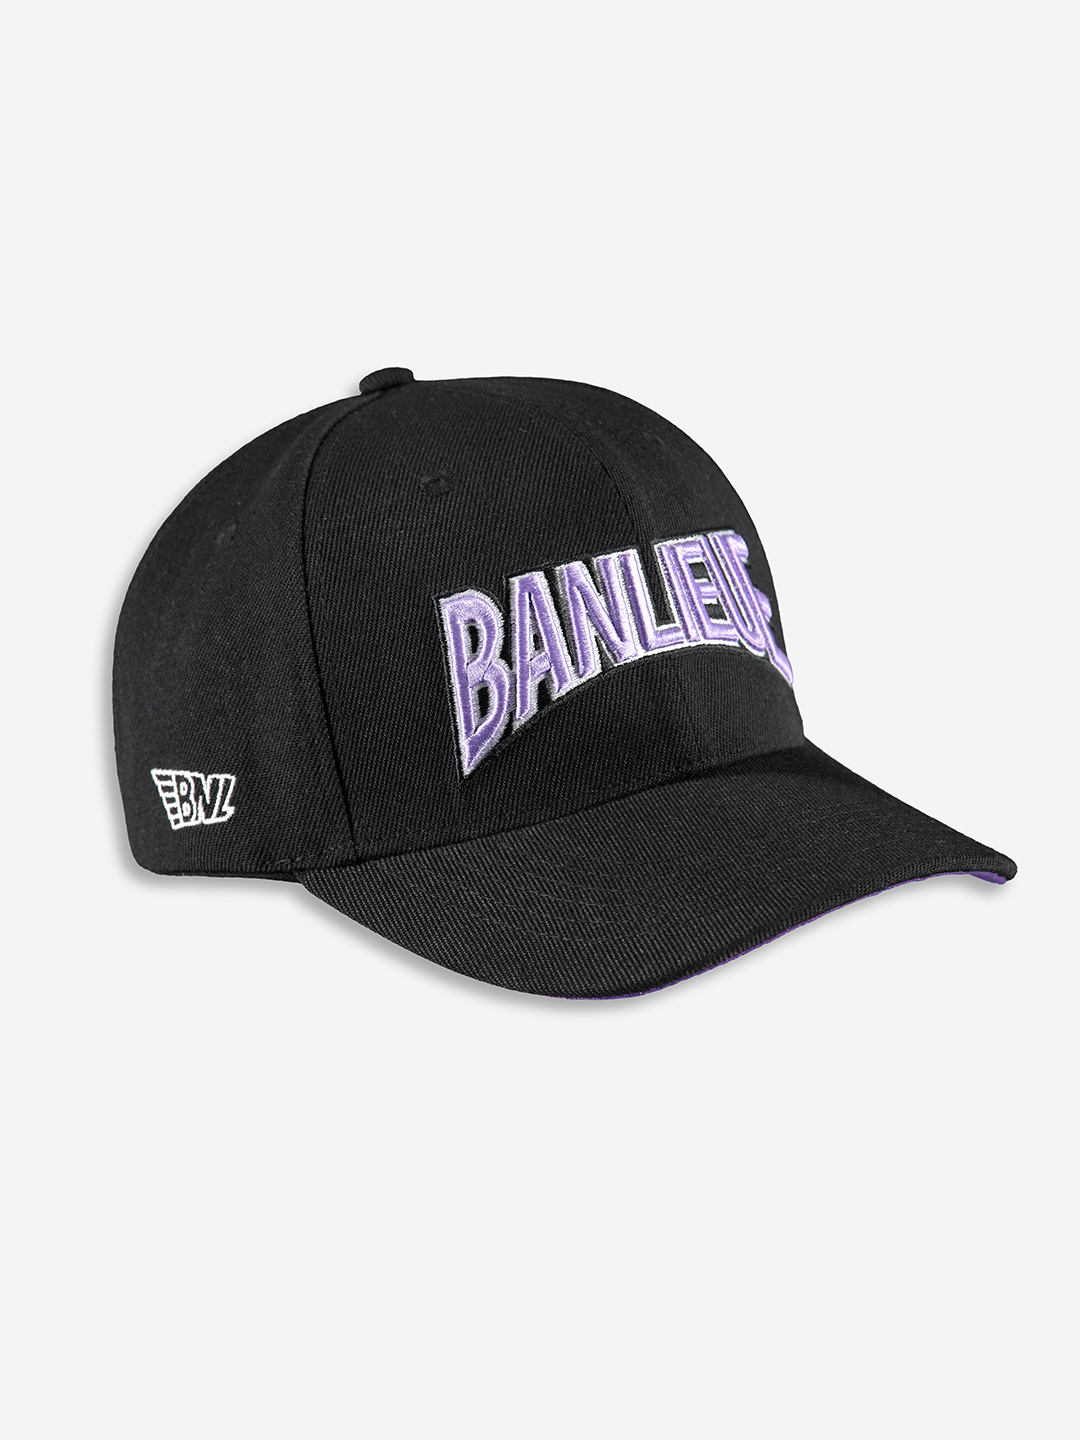 CHAMPION CAP BLACK/PURPLE